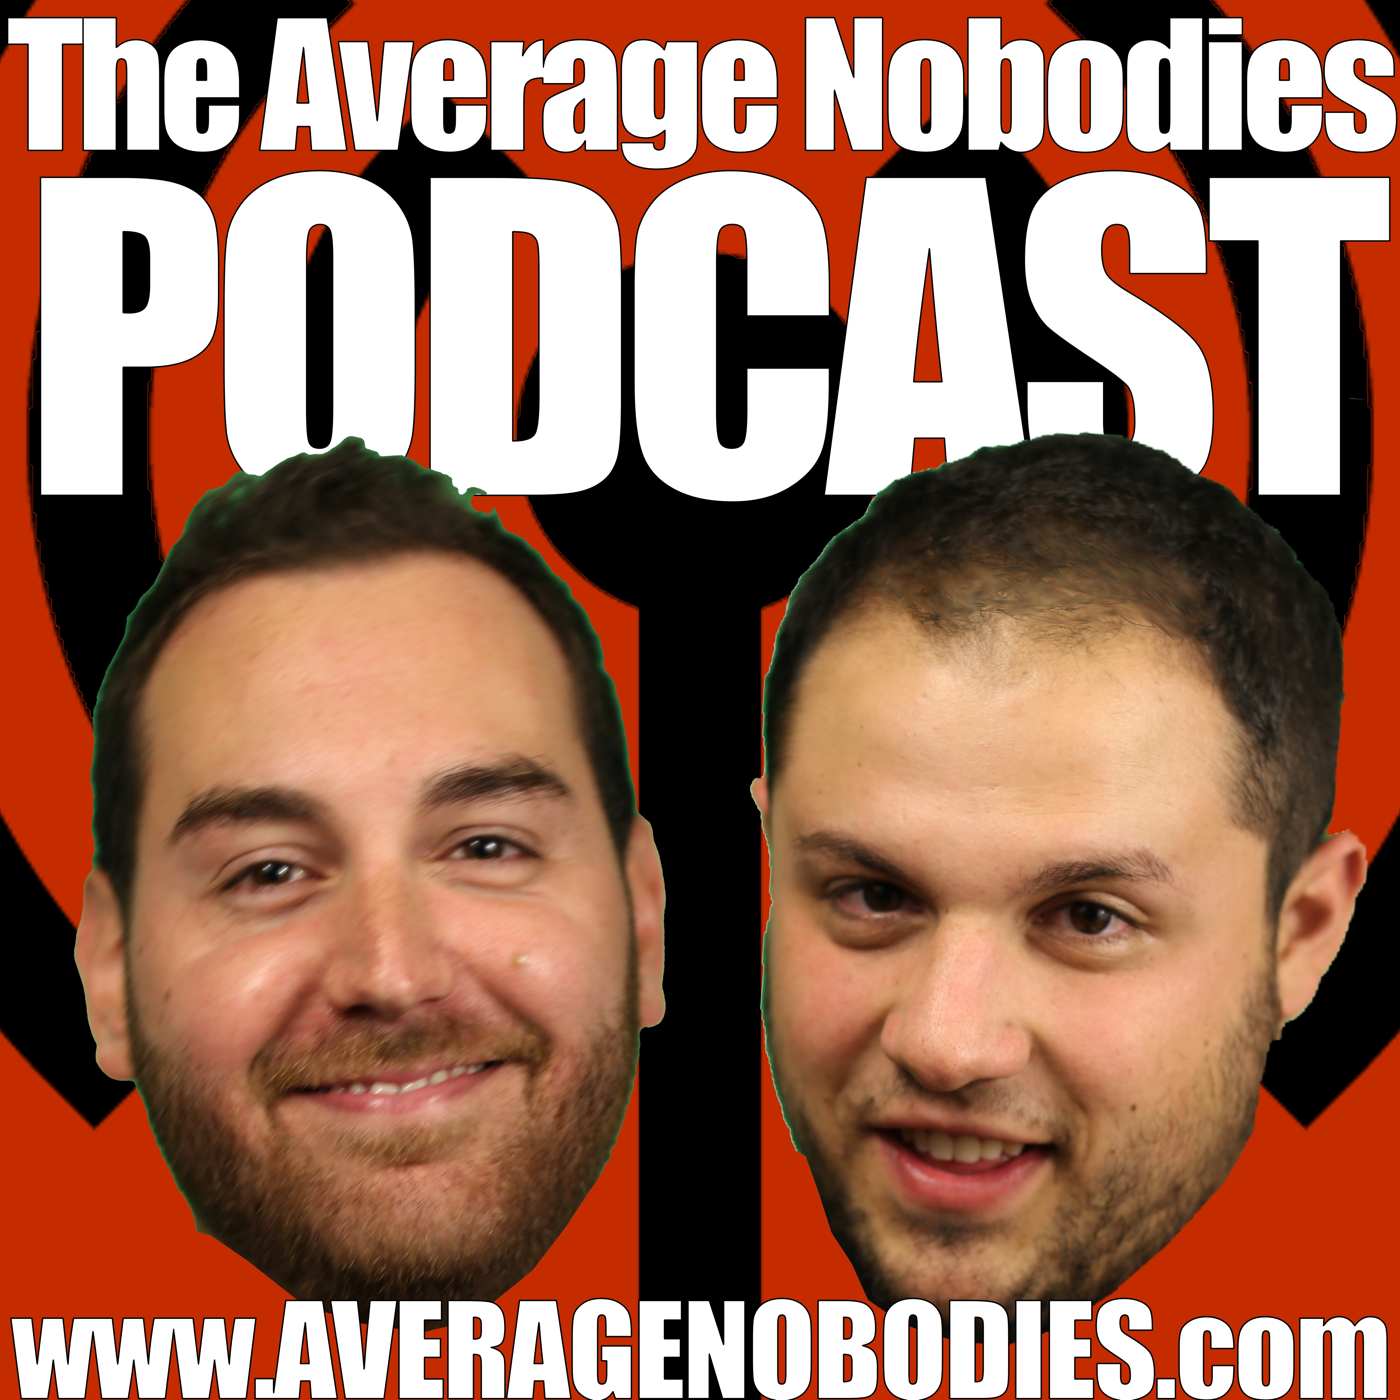 Average Nobodies Podcast – Average Nobodies